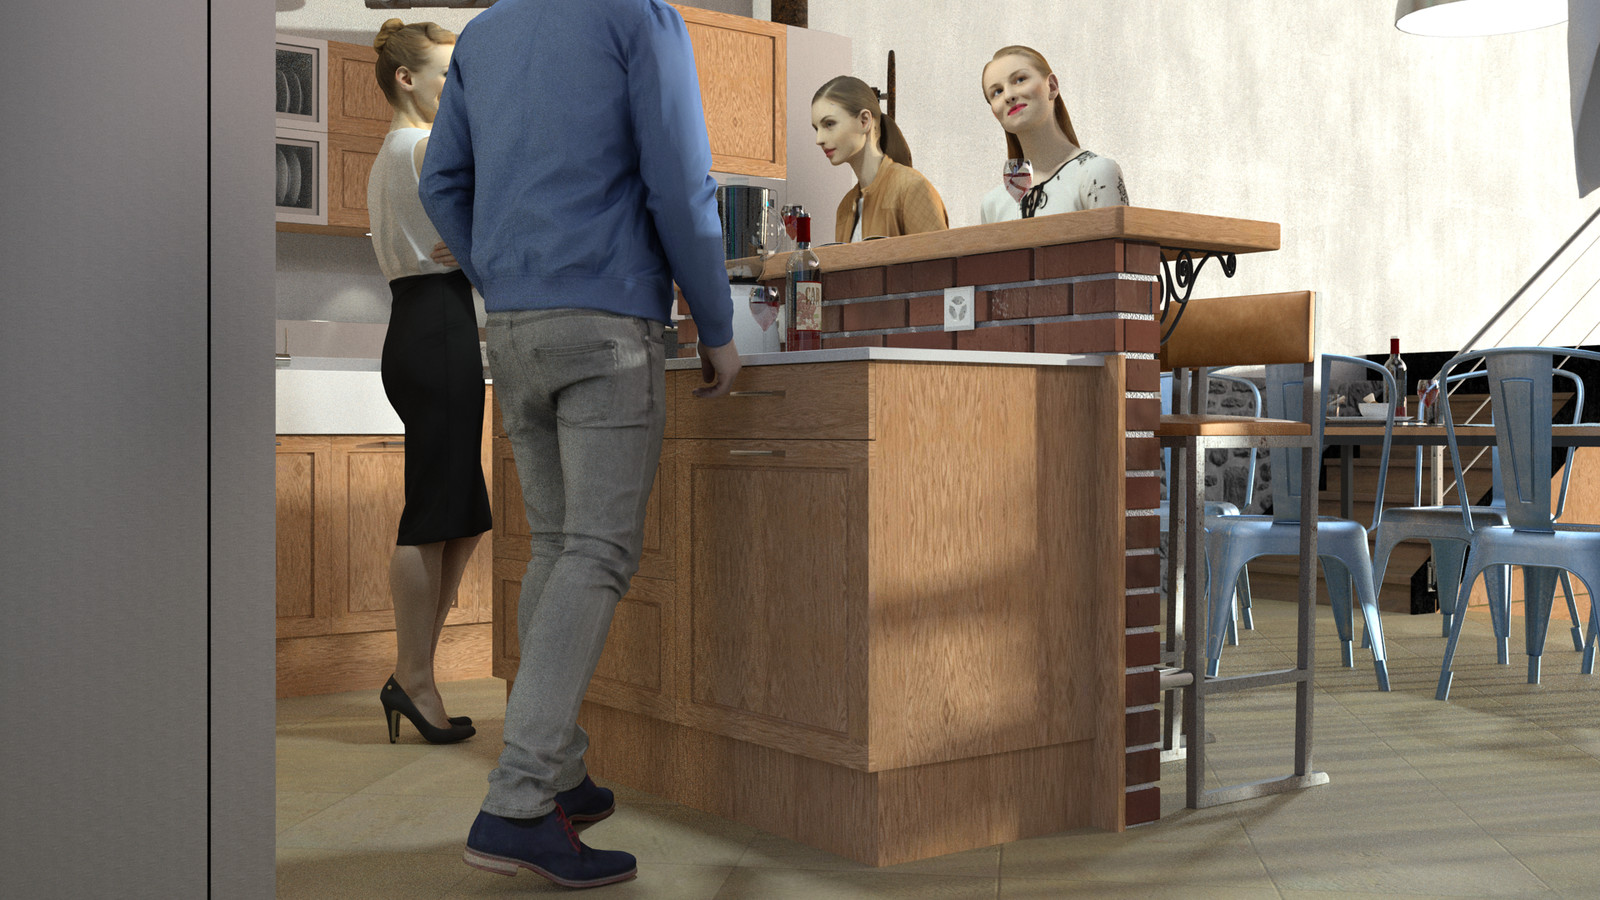 SketchUp + Thea Render  Rivendell Mill's Kitchen Bar Rivendell Brick Bar 2017-Scene 011  The 3d people are from AXYZ design collections found here: Collection 30 : http://bit.ly/2kS8pHx Collection 31 : http://bit.ly/2lJSkFu